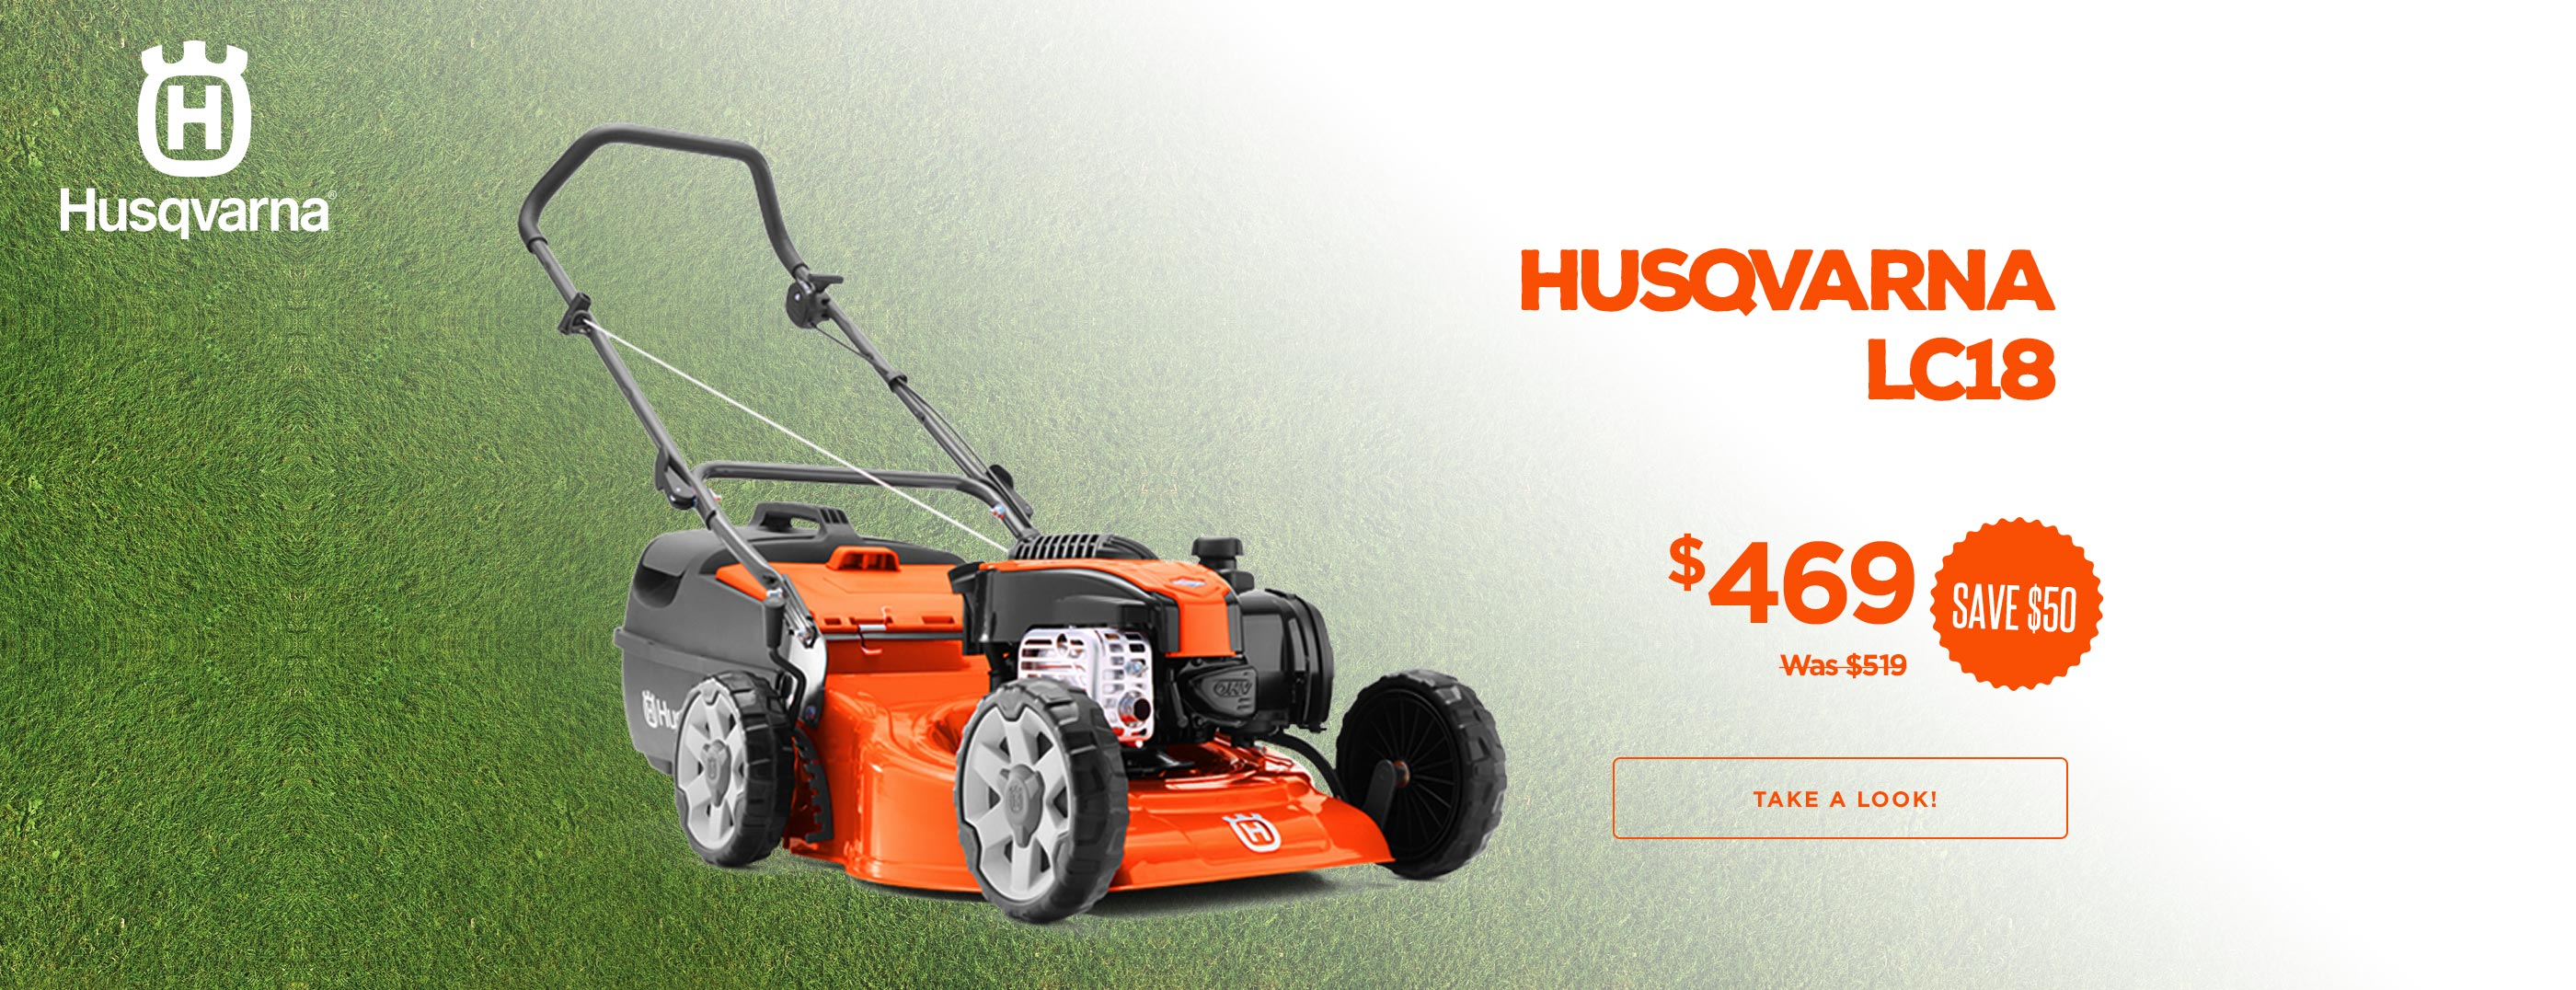 Husqvarna LC18 Lawn Mower Now $469